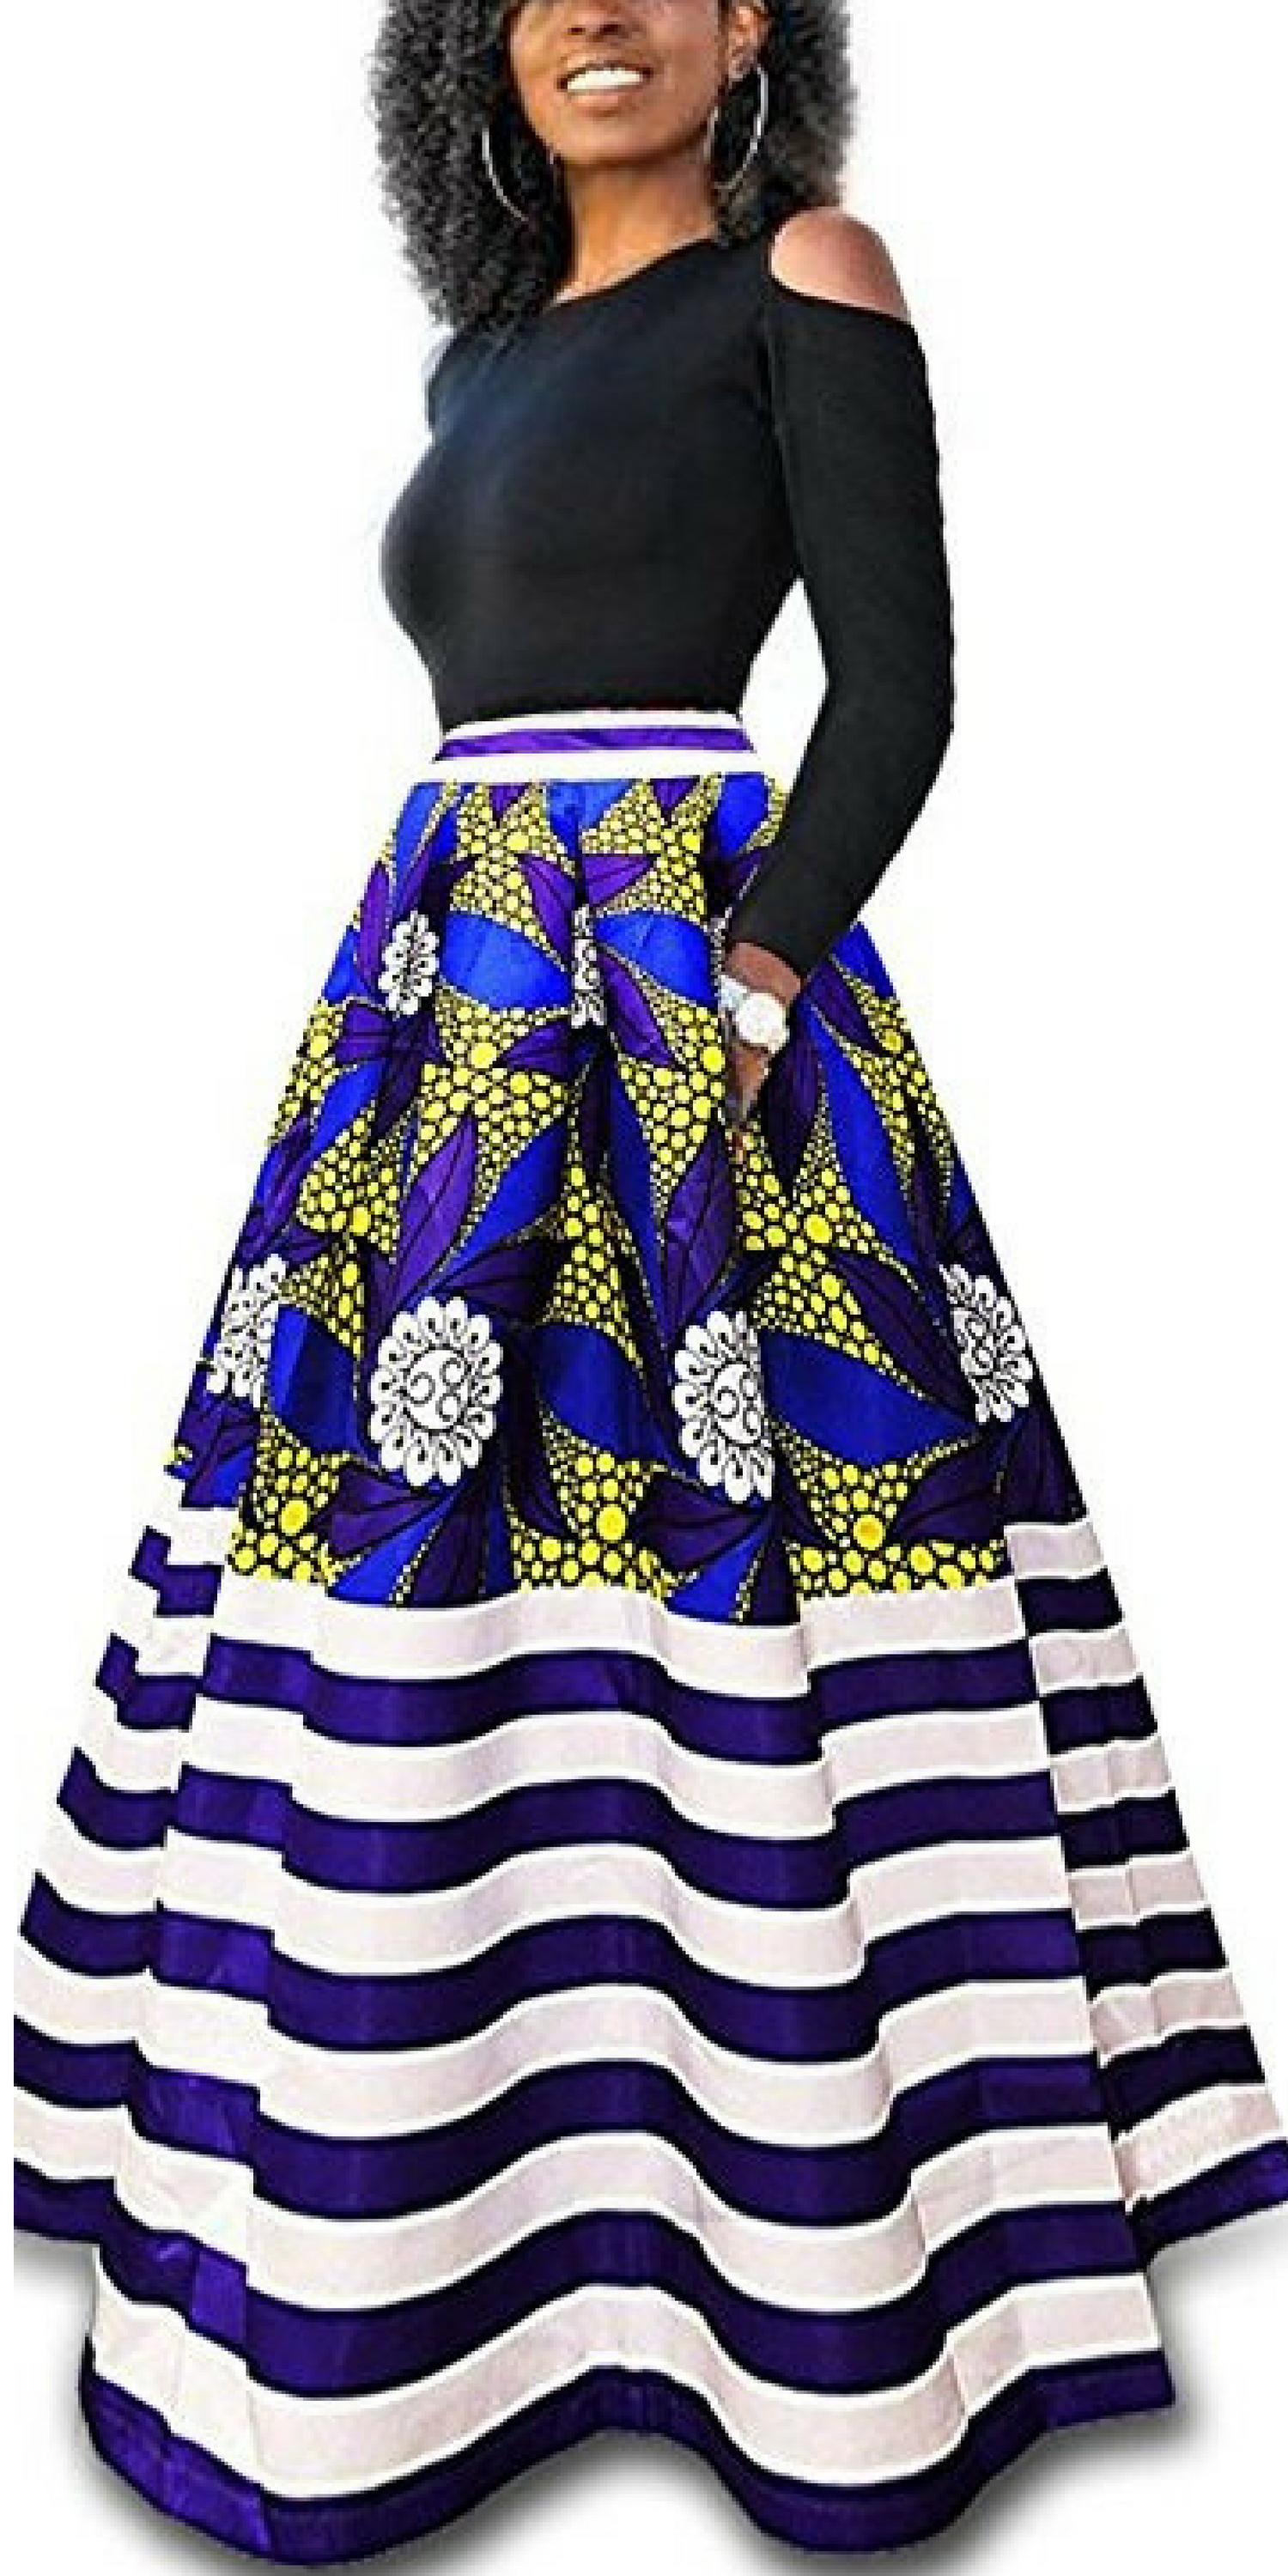 291f3658a9 Nice Women s African Floral Print A Line Long Skirt  ad  womenfashion   fashion  africanfashion  africanprints